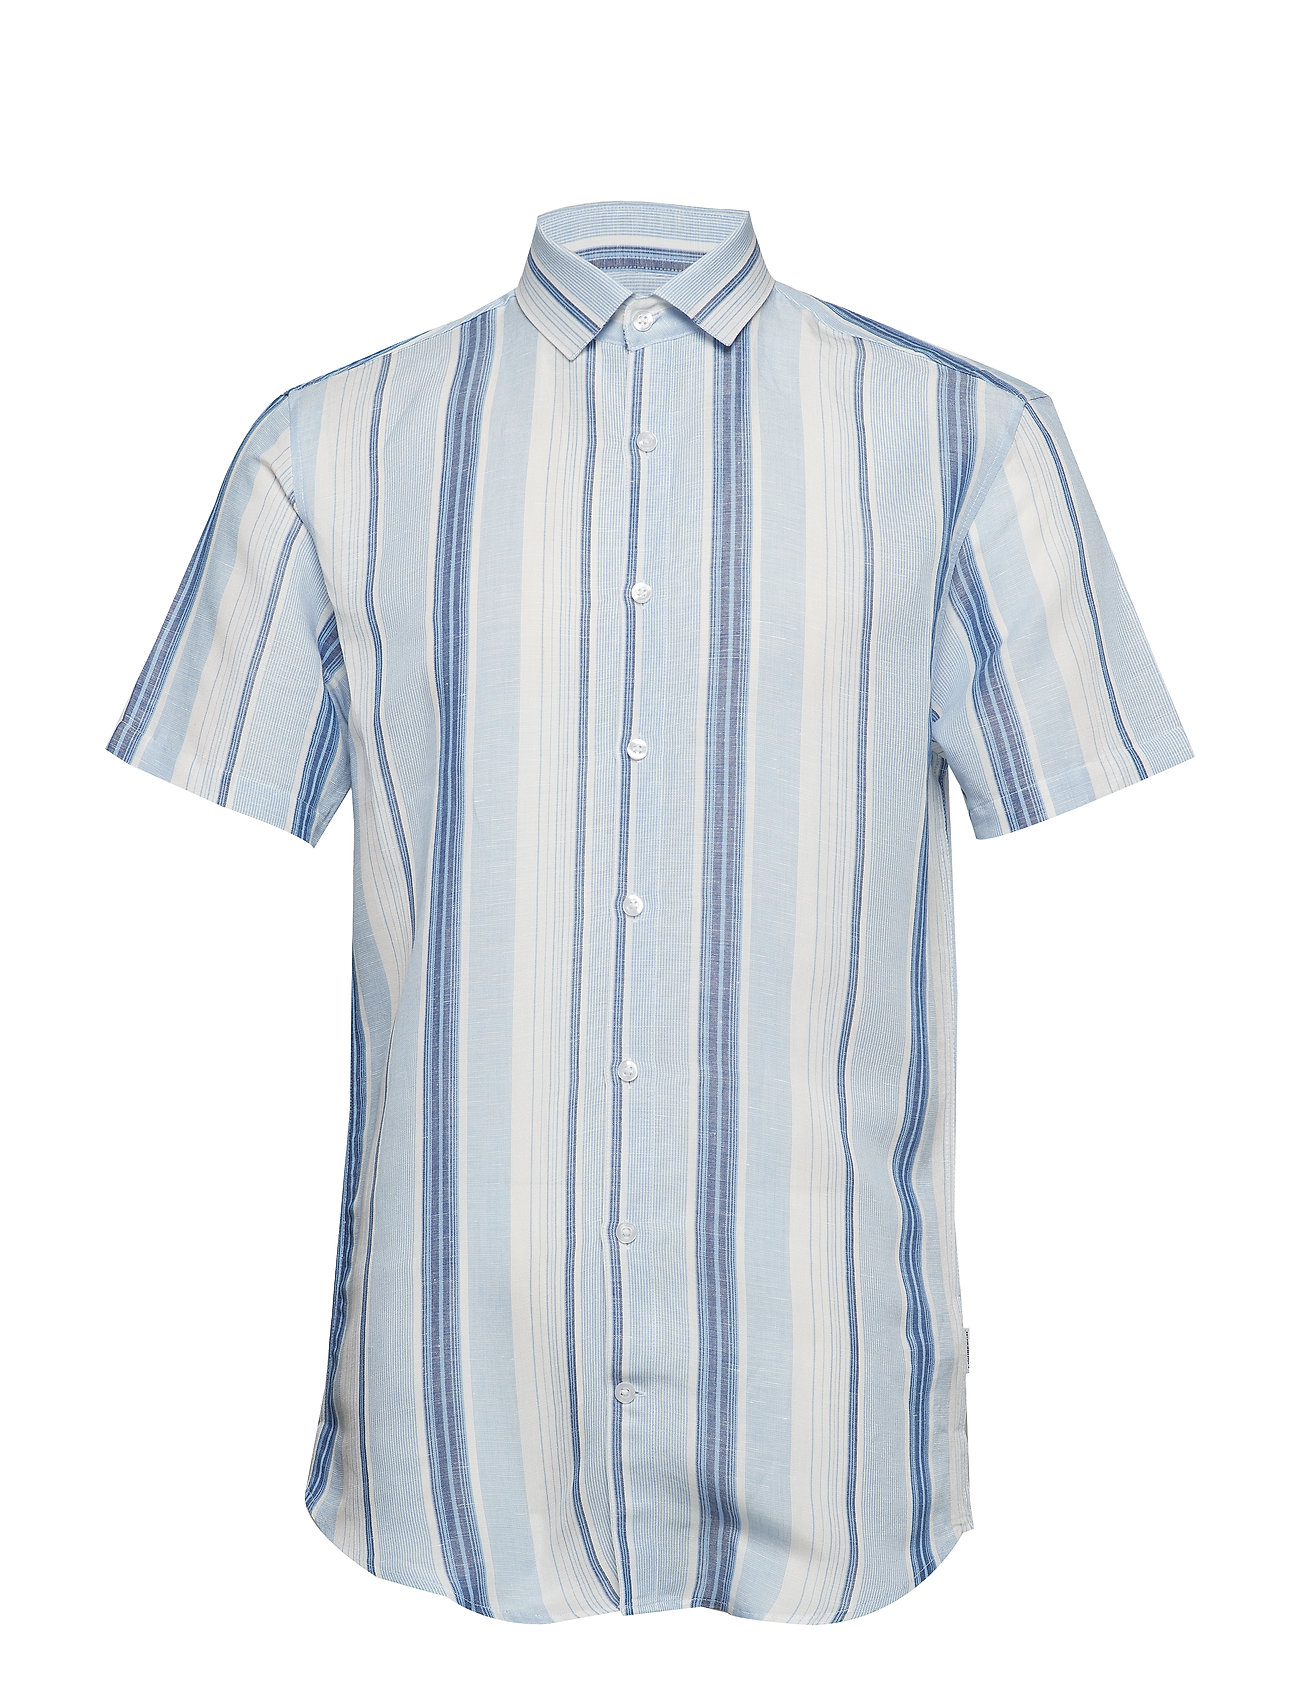 Lindbergh Striped shirt S/S - BLUE